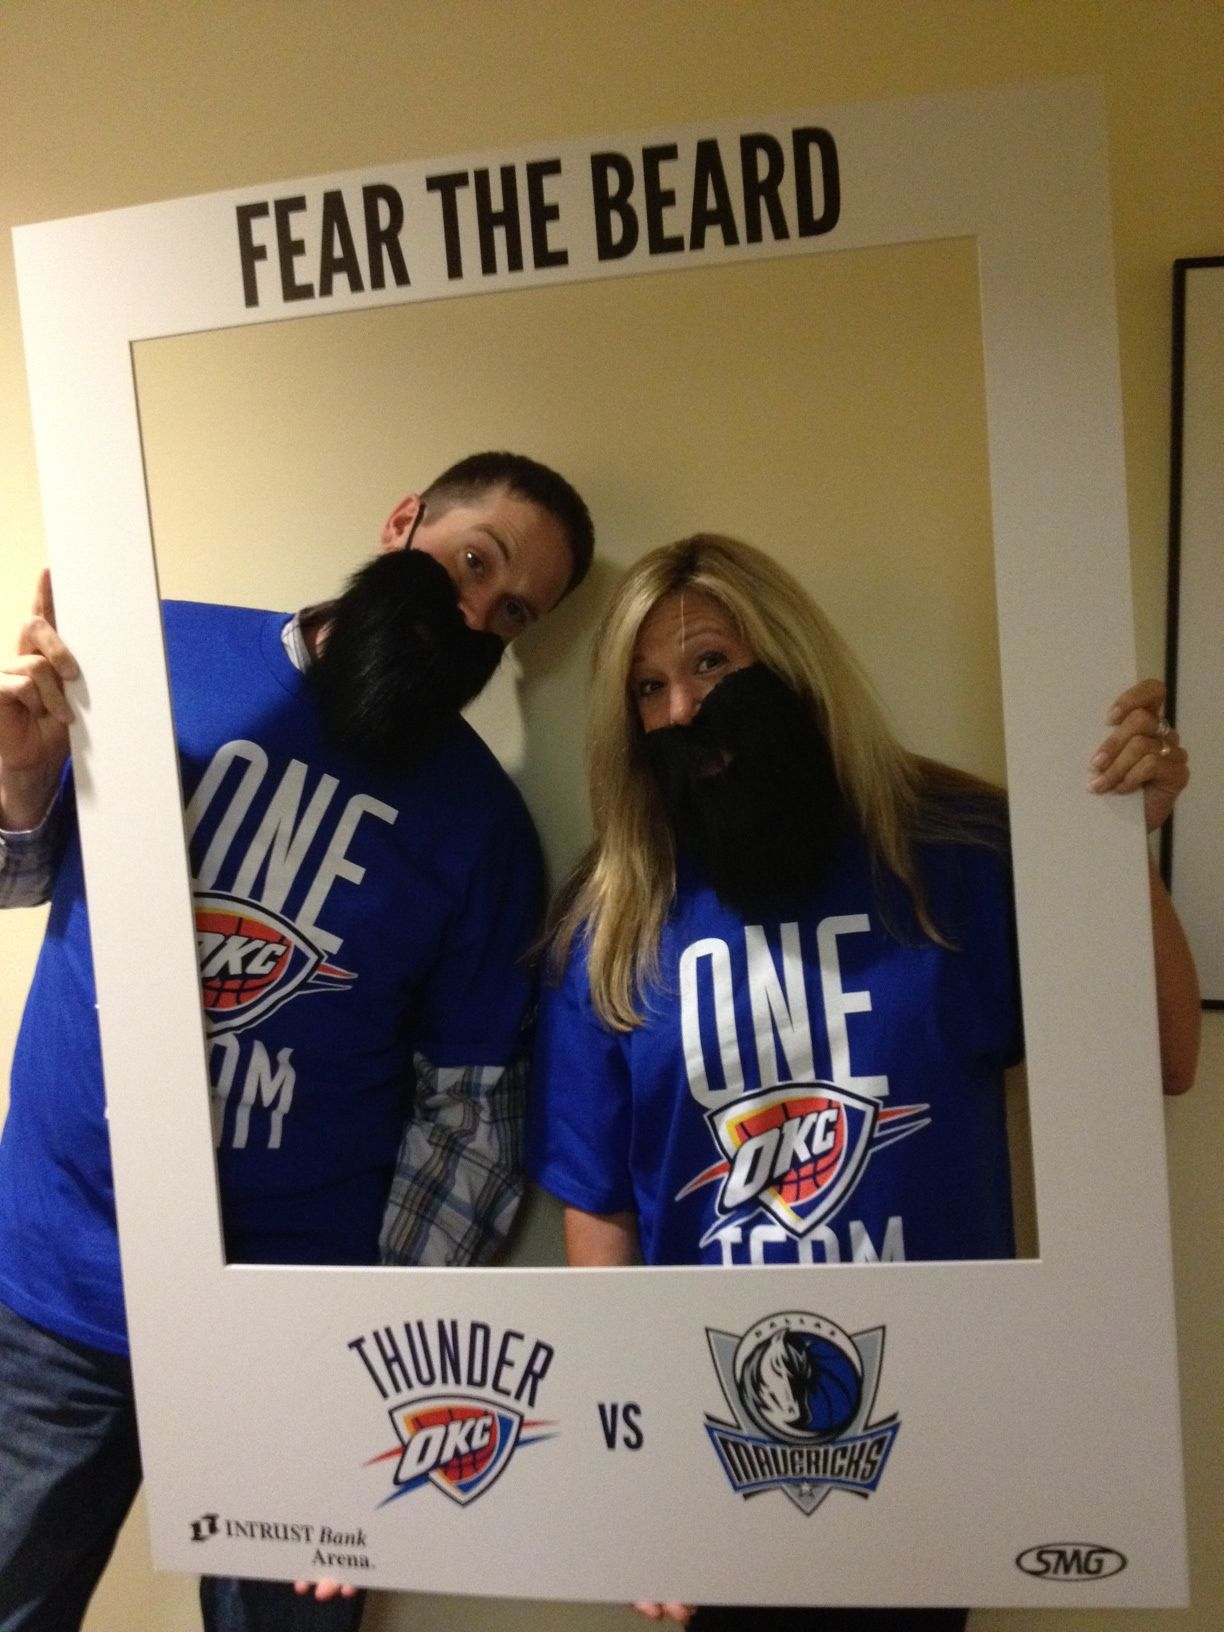 Brian & Cathy from Kissin' 102.1 Fear The Beard.